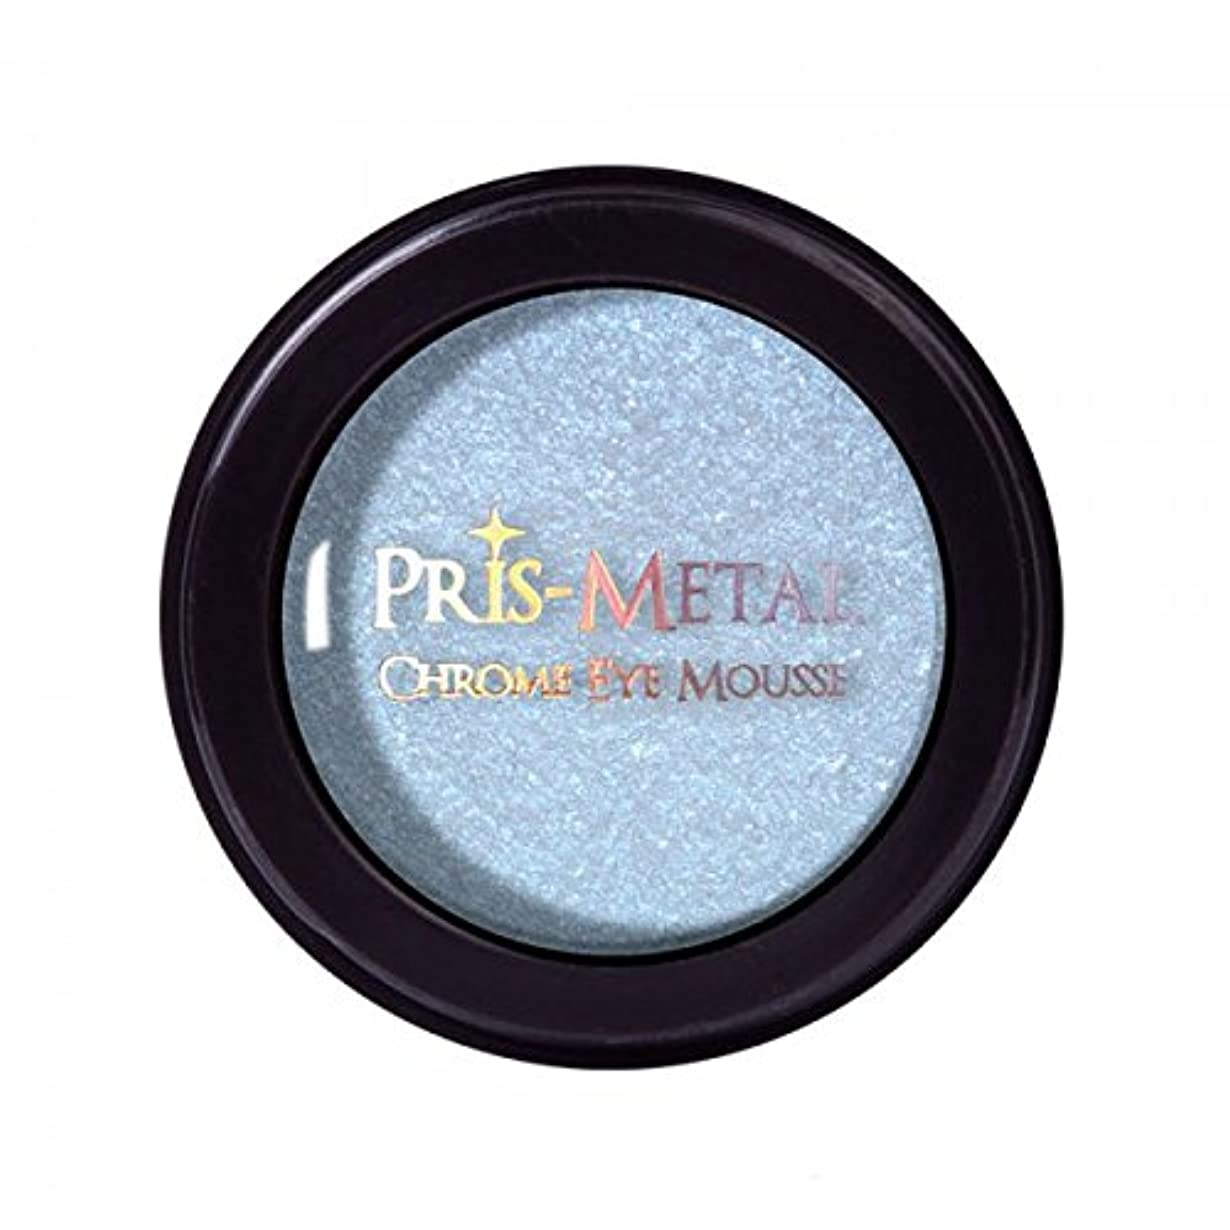 支配的カバー聴覚(3 Pack) J. CAT BEAUTY Pris-Metal Chrome Eye Mousse - Dreamer (並行輸入品)